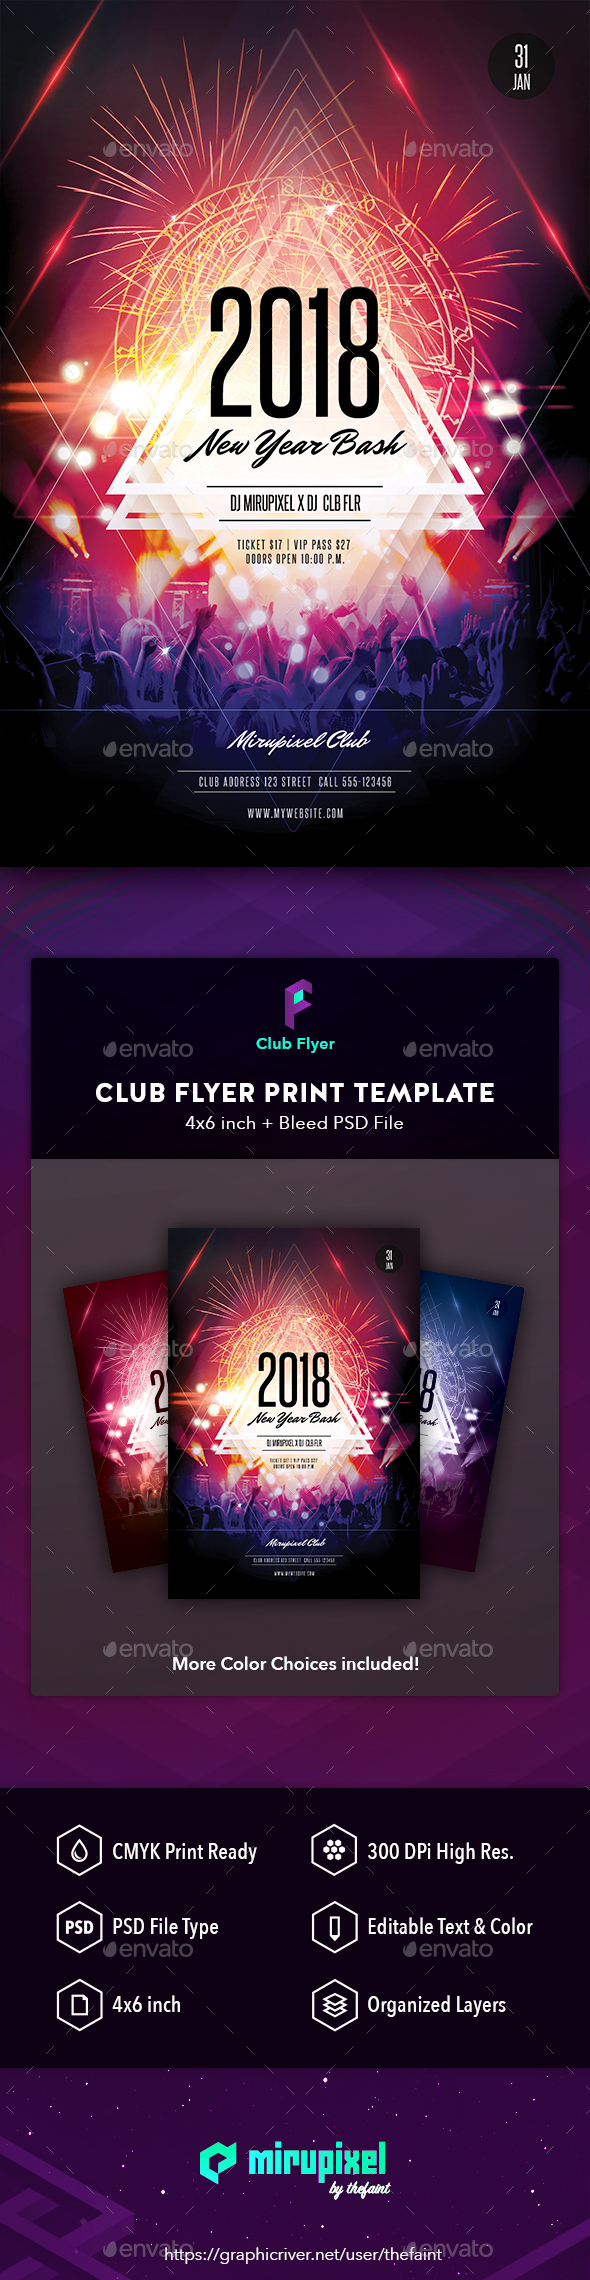 GraphicRiver Club Flyer New Year Bash 21168609